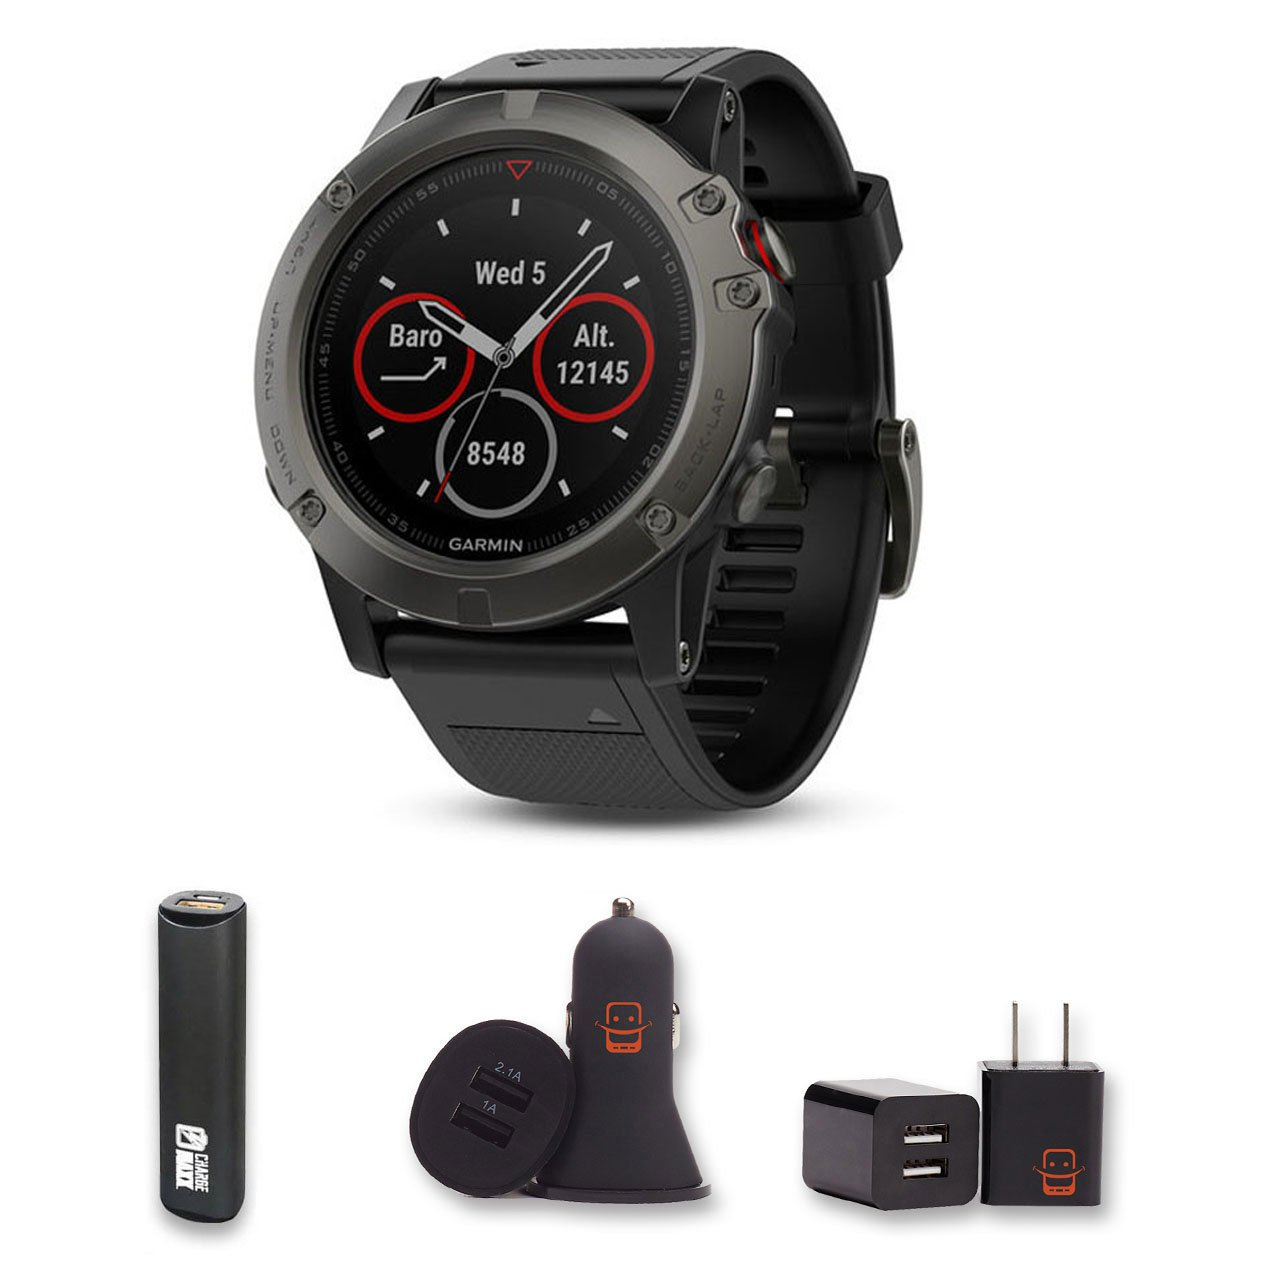 Garmin Fenix 5 Sapphire (Black/Black Band) Bundle with PowerBank + USB Car Charger + USB Wall Charger (4 Items) by E Zee Electronics (Image #1)